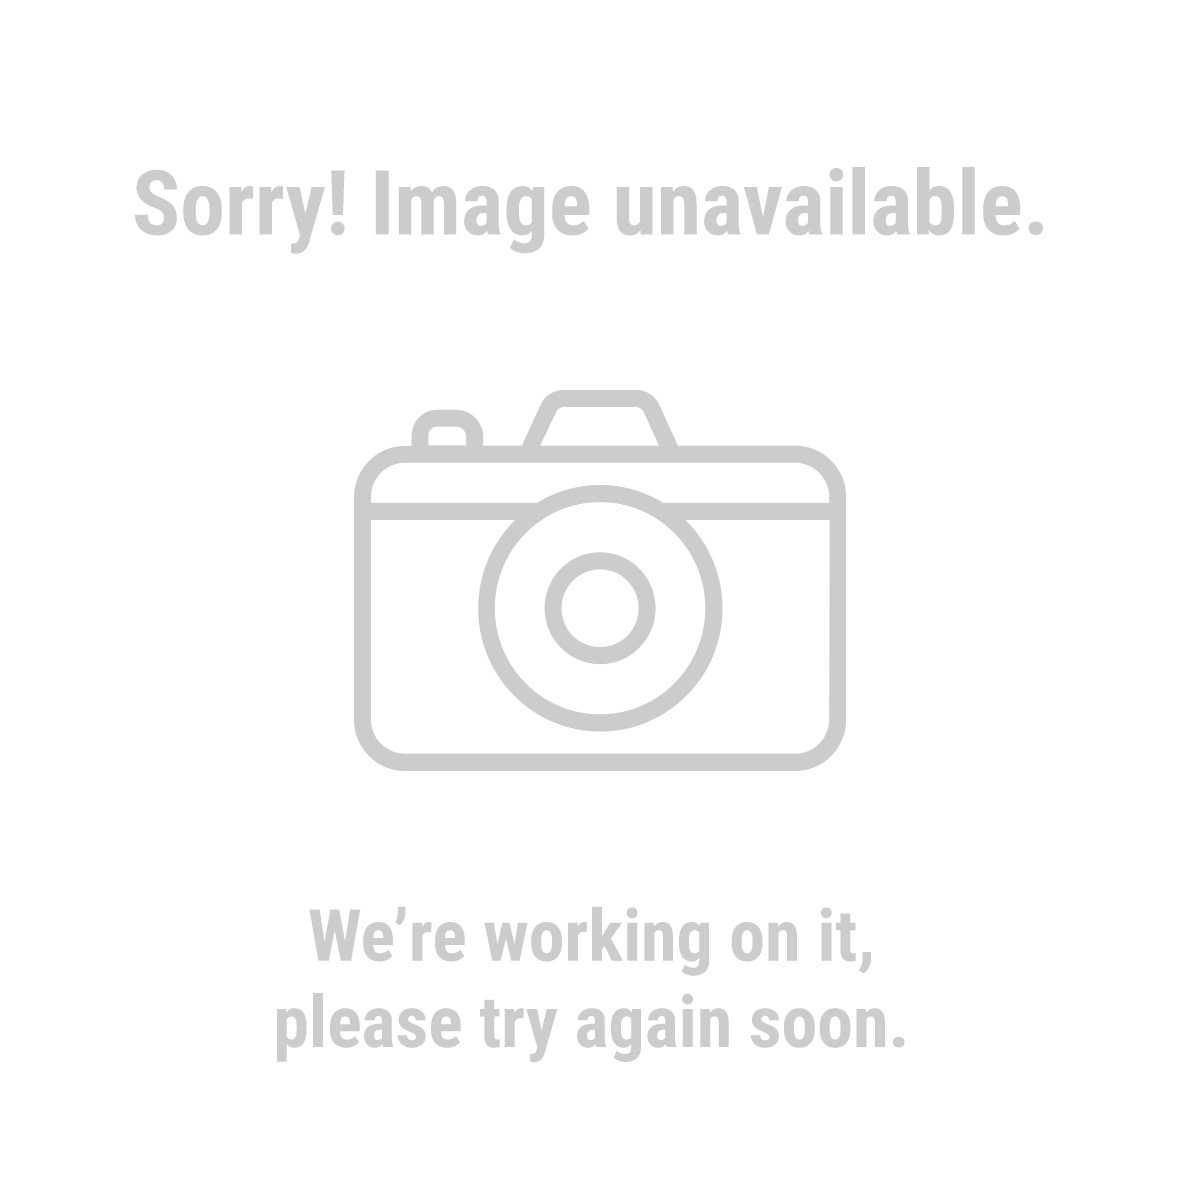 HFT 61866 50 ft. x 12 Gauge Outdoor Extension Cord